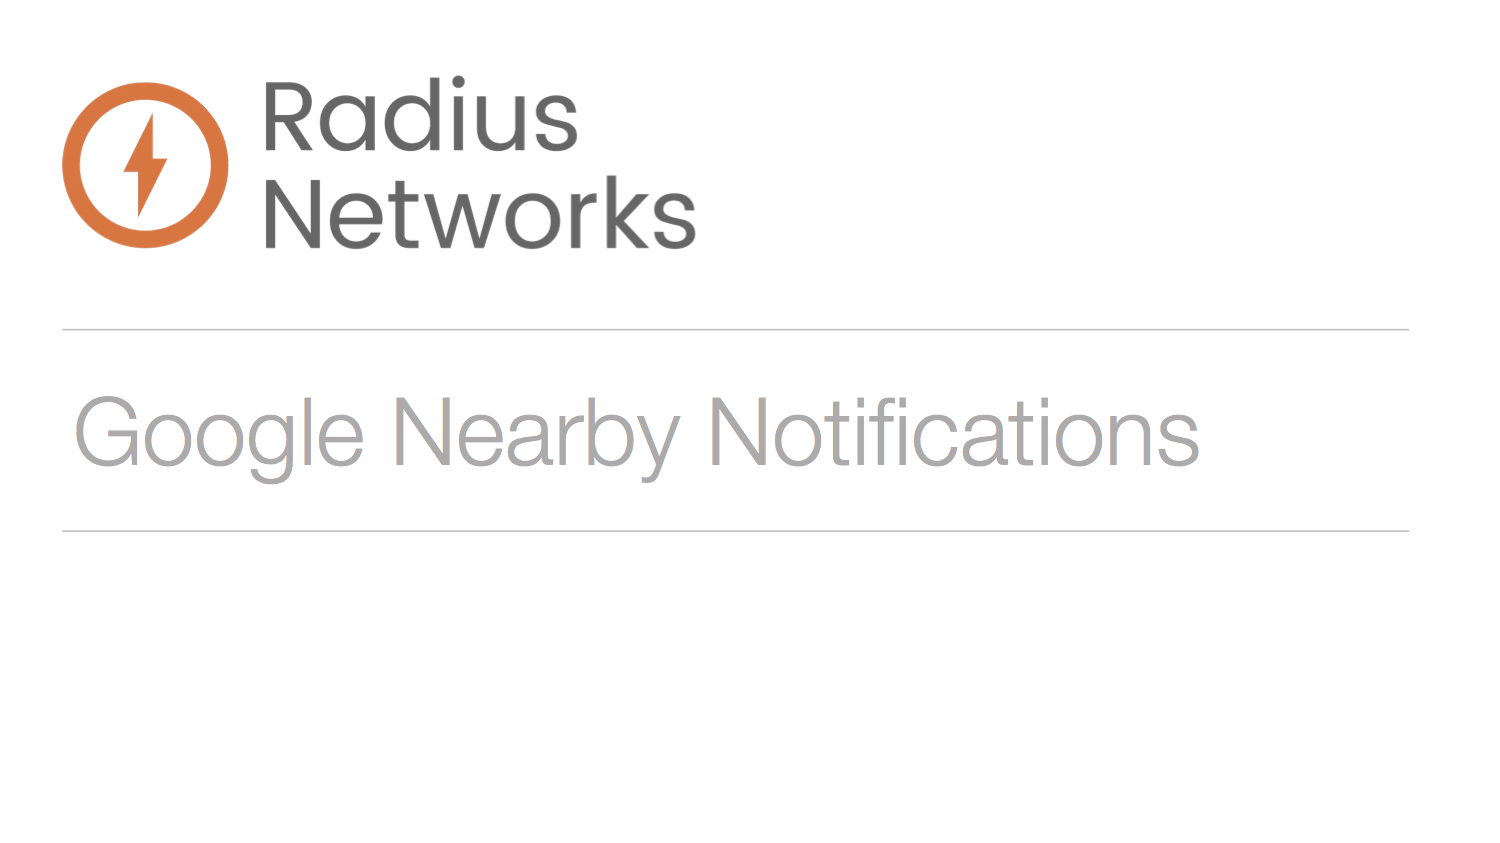 Nearby_Notifications1.png